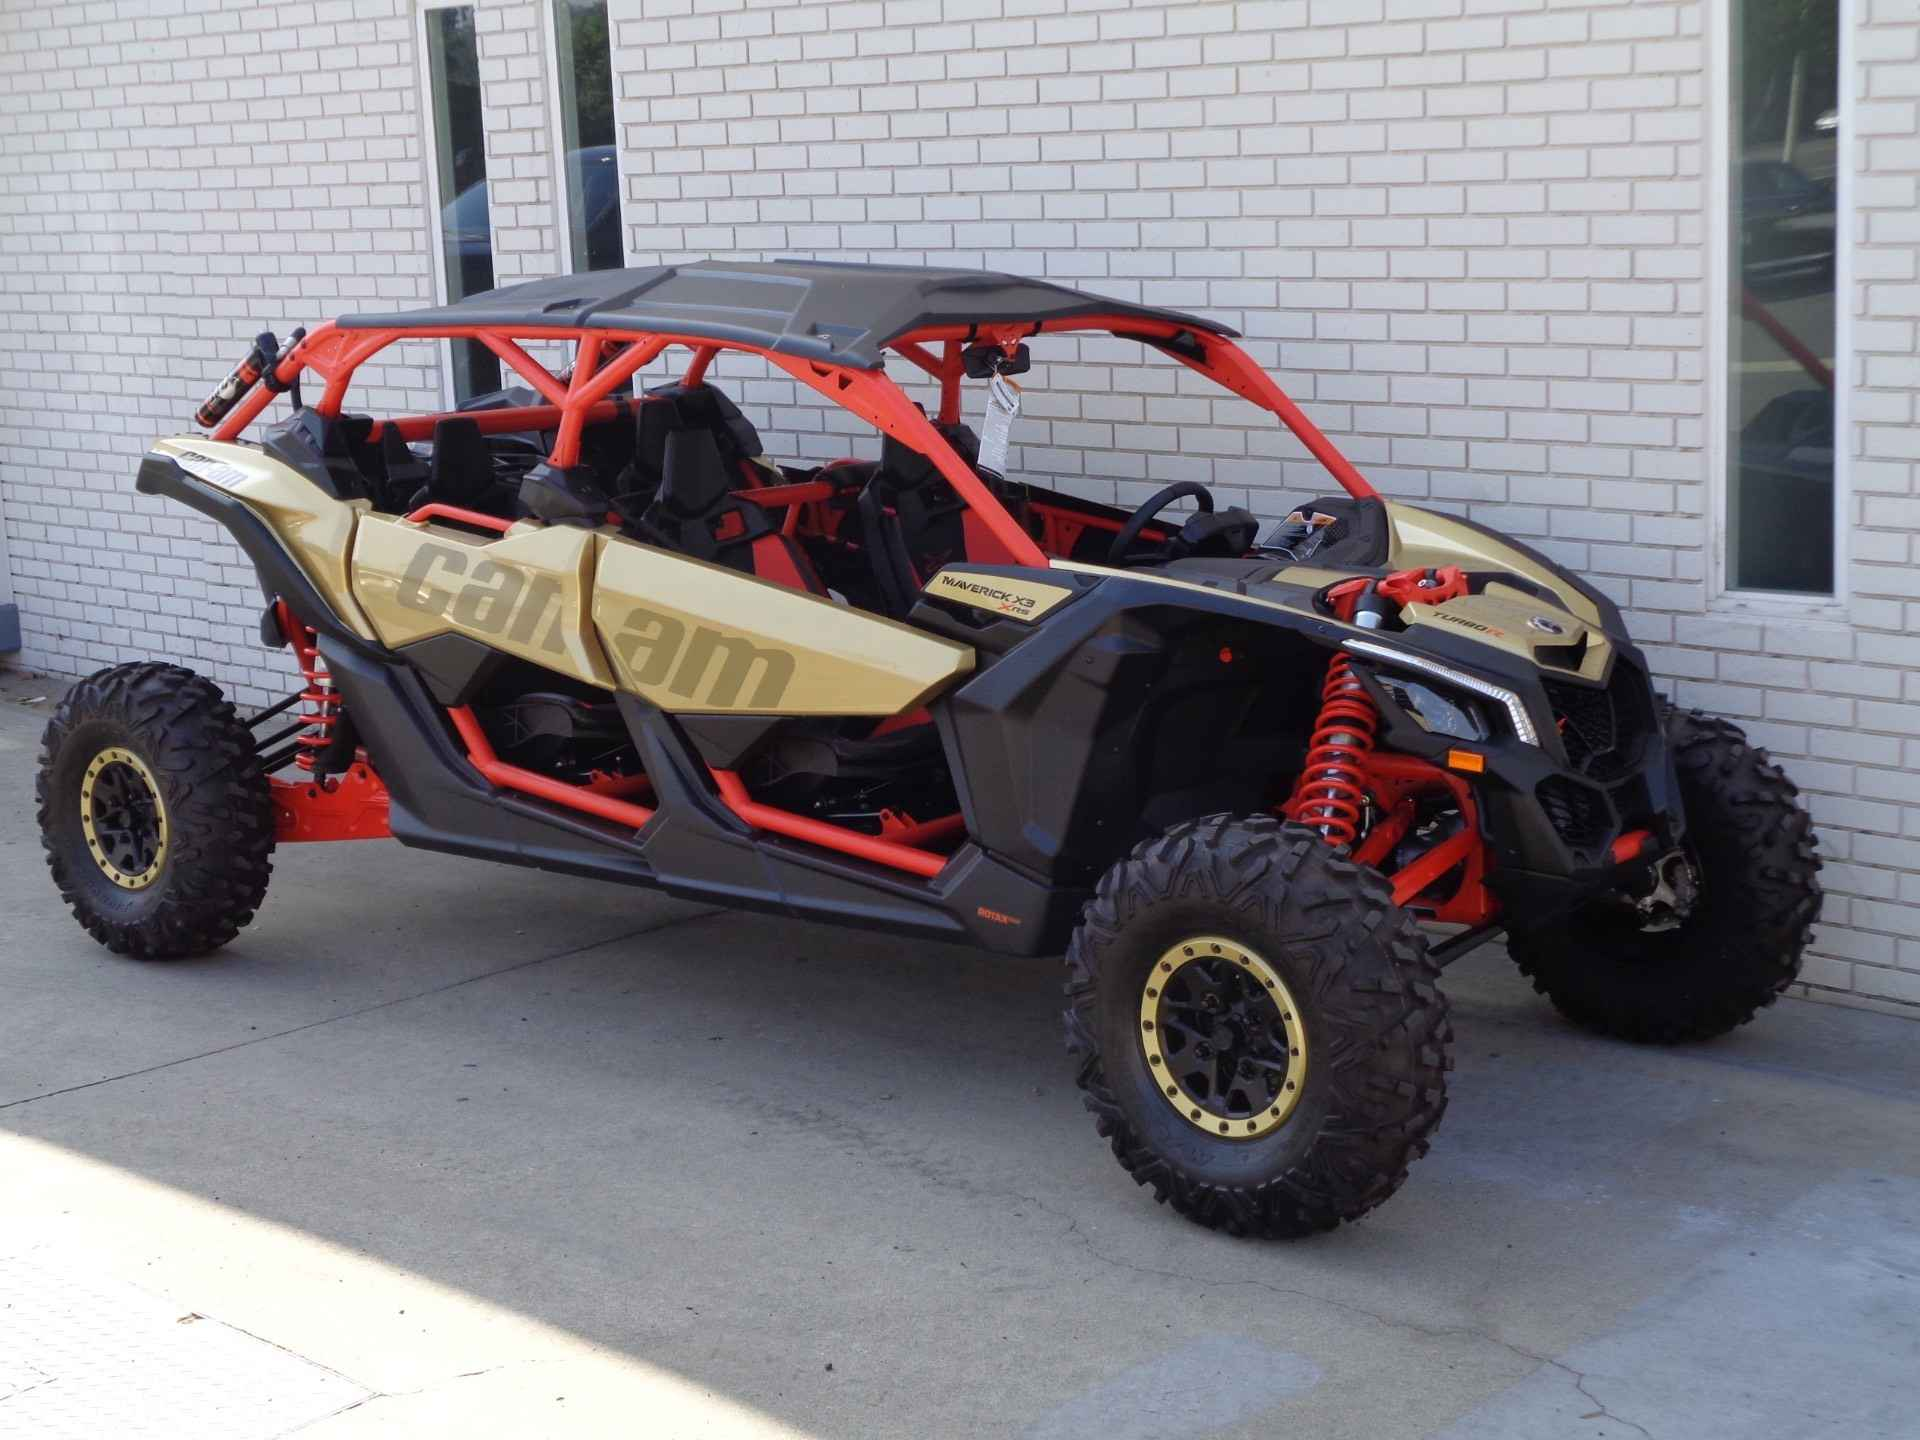 new 2017 can am maverick x3 max x rs turbo r atvs for sale in california on atv trades. Black Bedroom Furniture Sets. Home Design Ideas